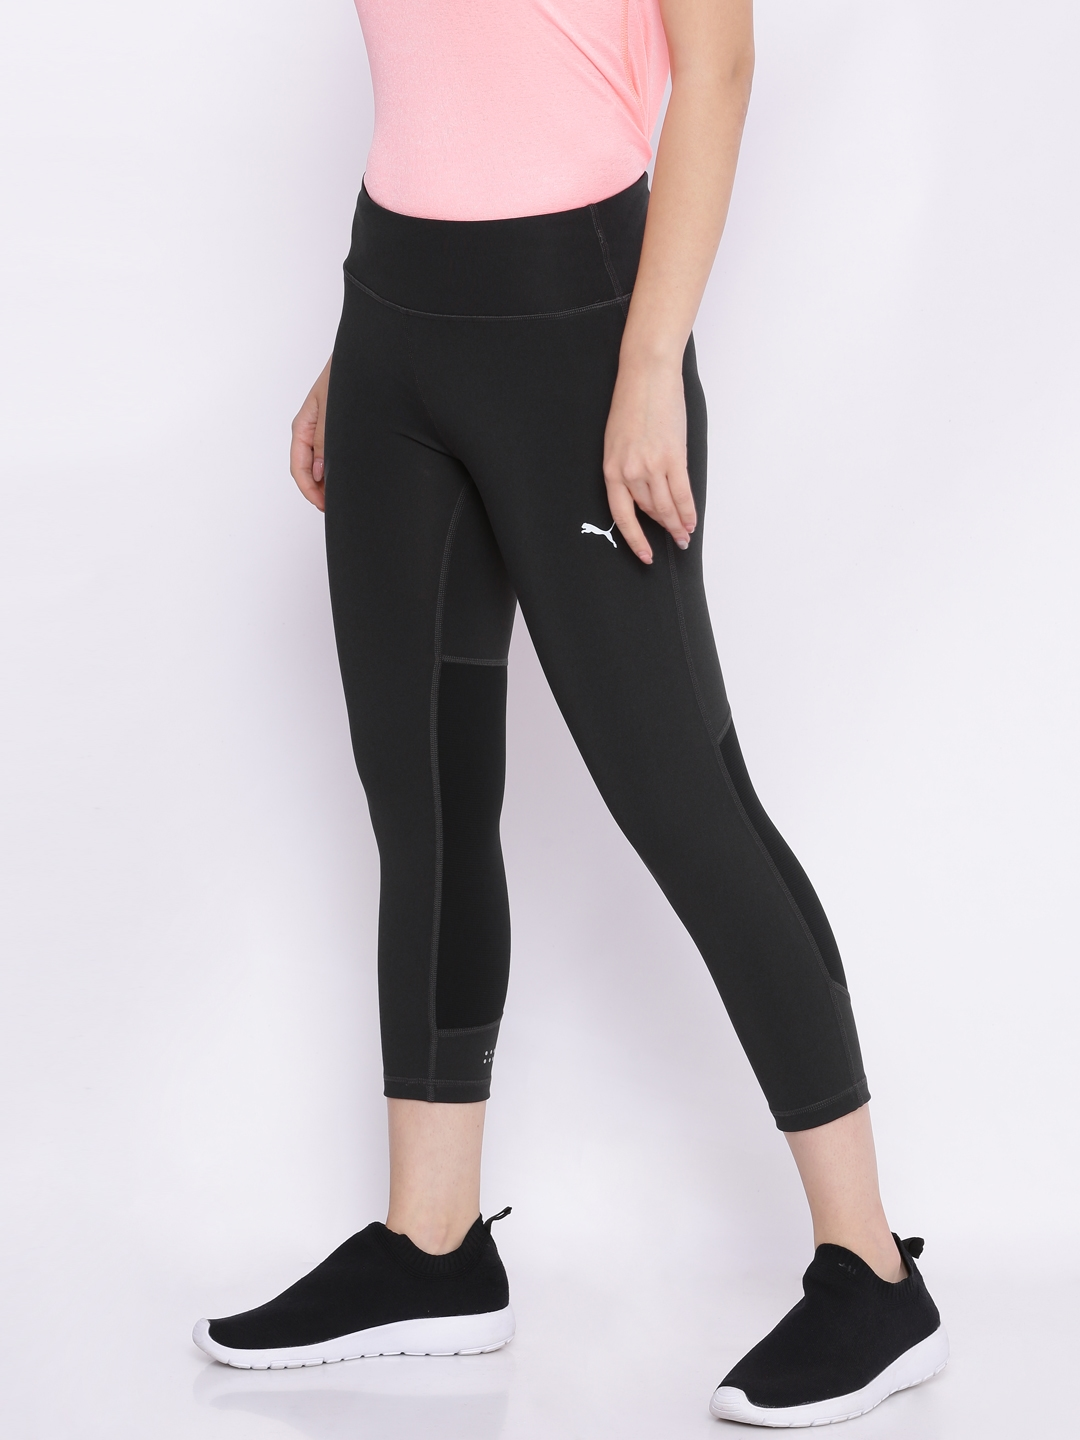 6b2656eed05bf Buy Puma Women Speed 3 4 Tight W - Tights for Women 6701297 | Myntra